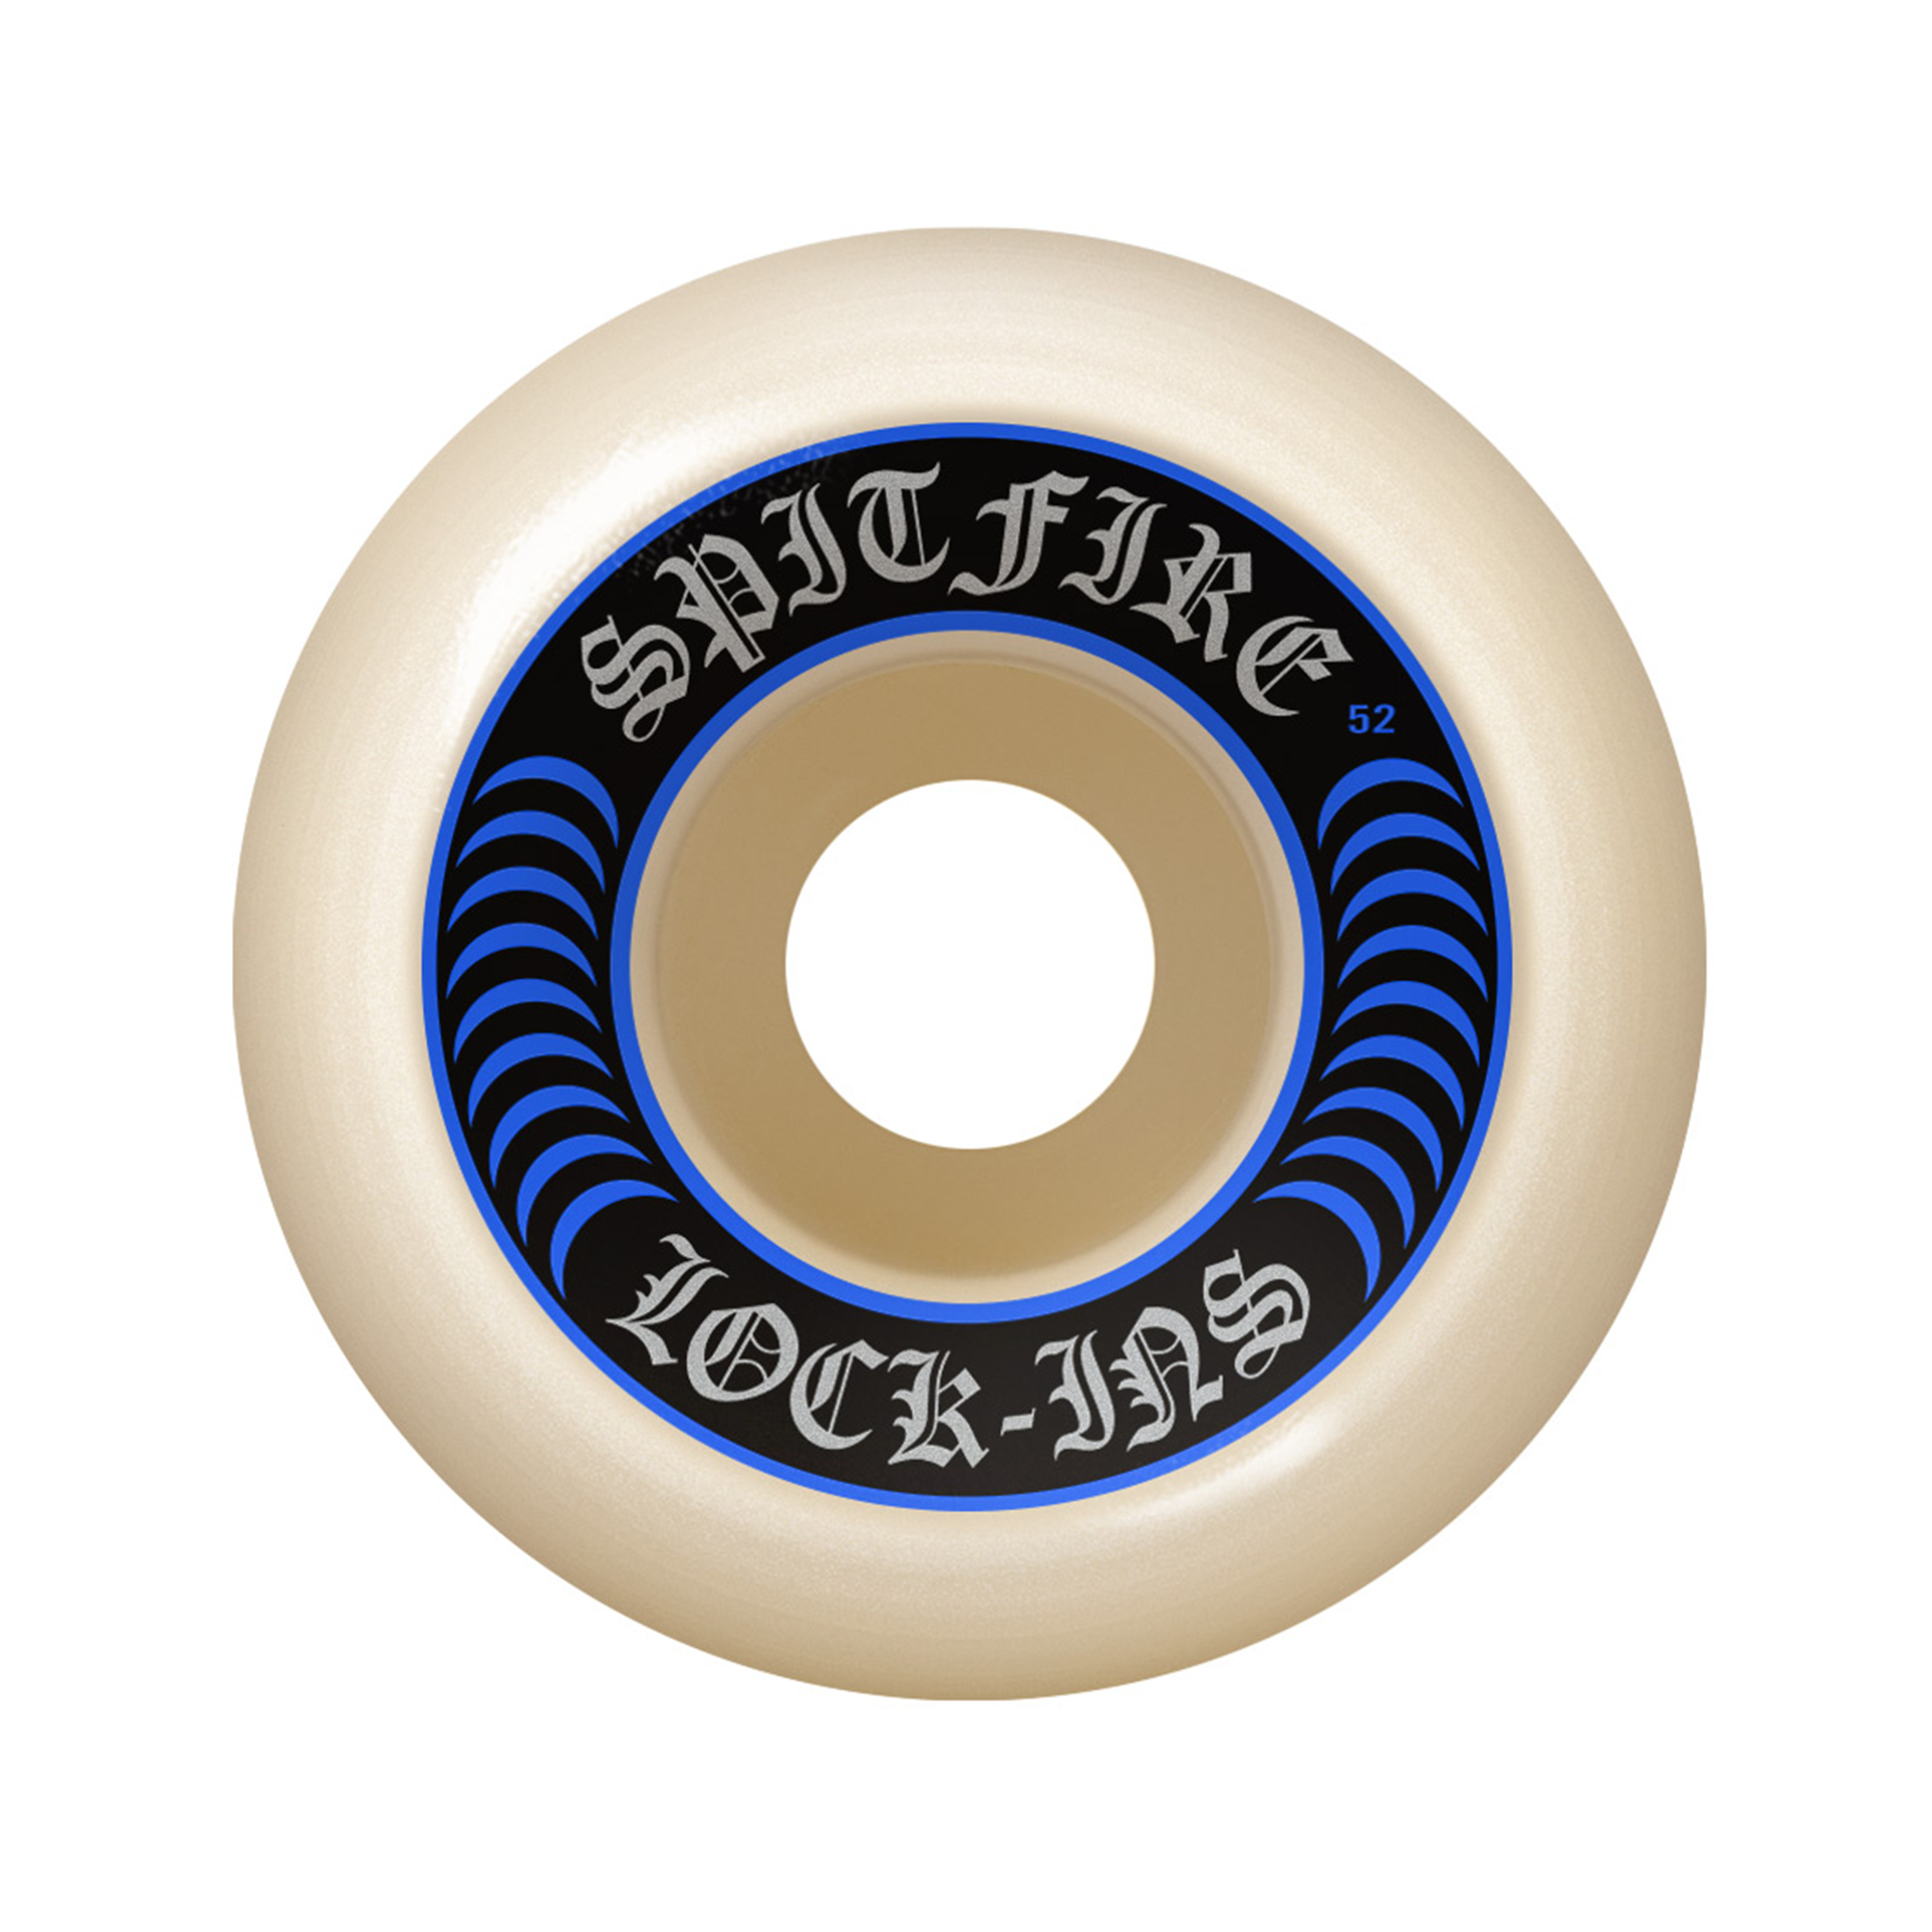 Spitfire Formula Four Lock In 99 Wheels Product Photo #1